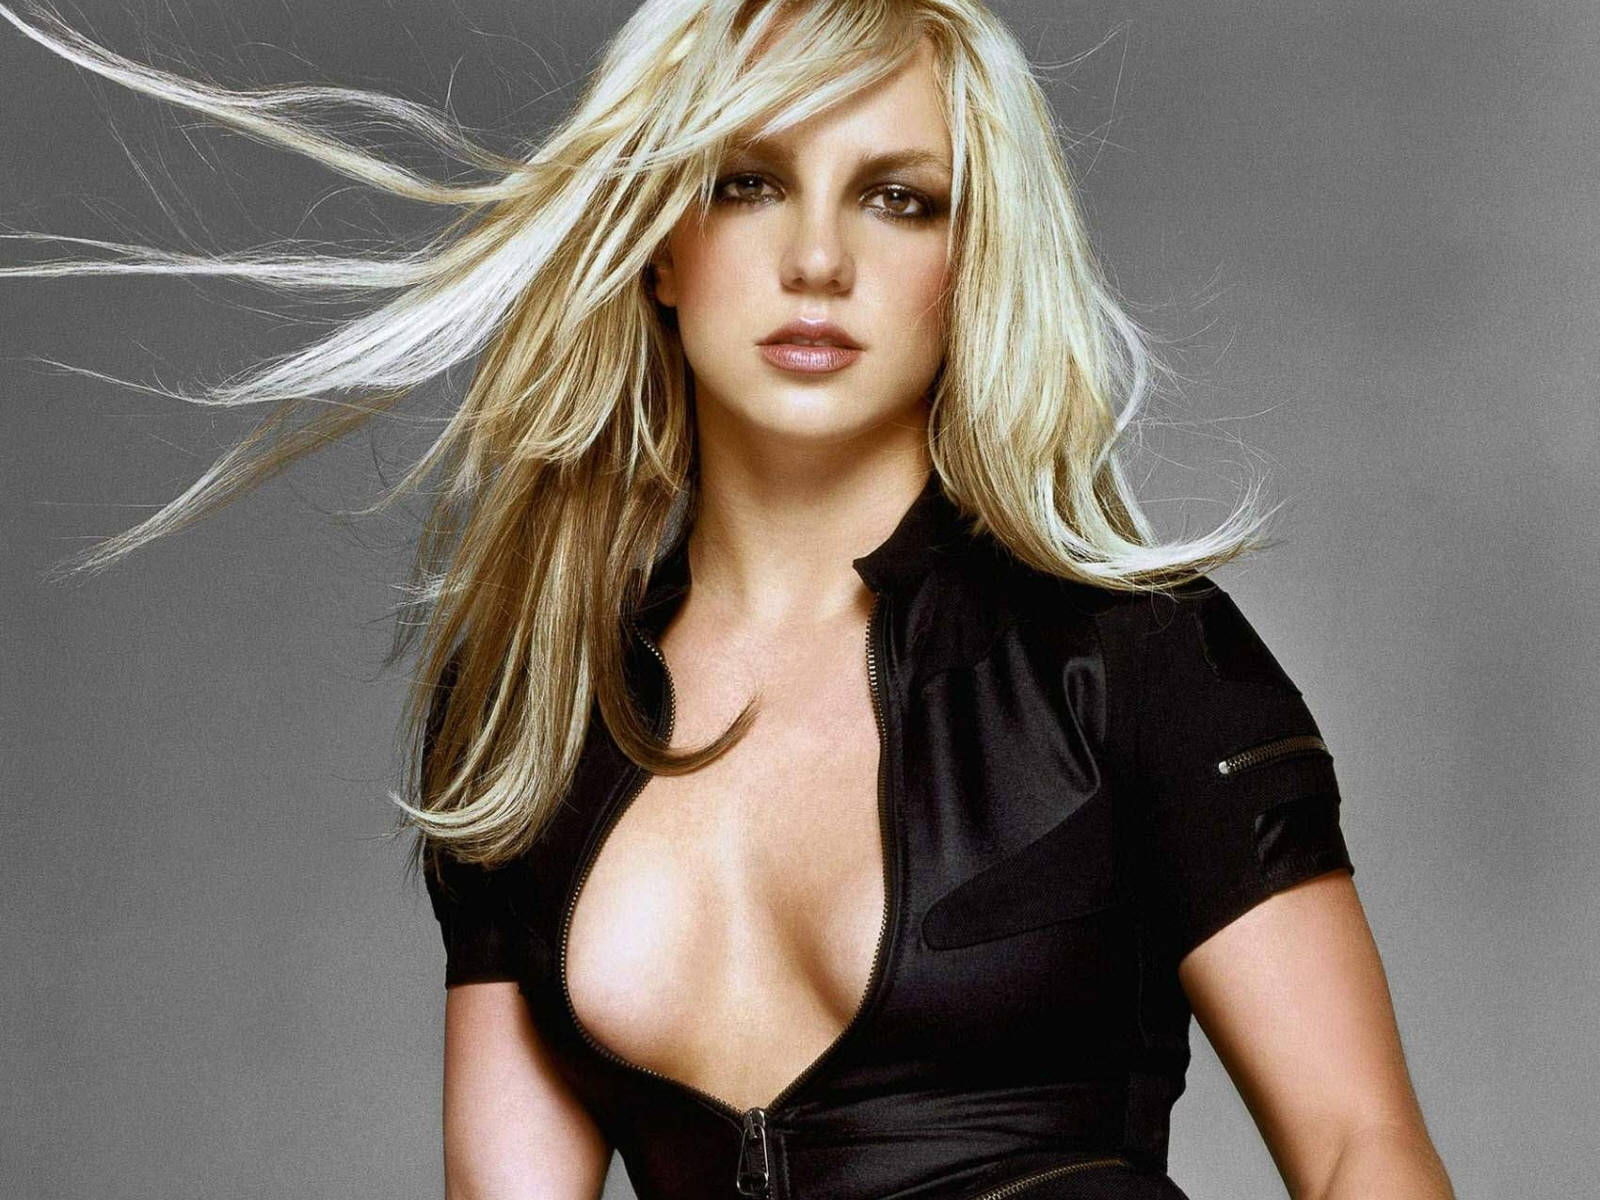 Best girl britney comarative boob size would love